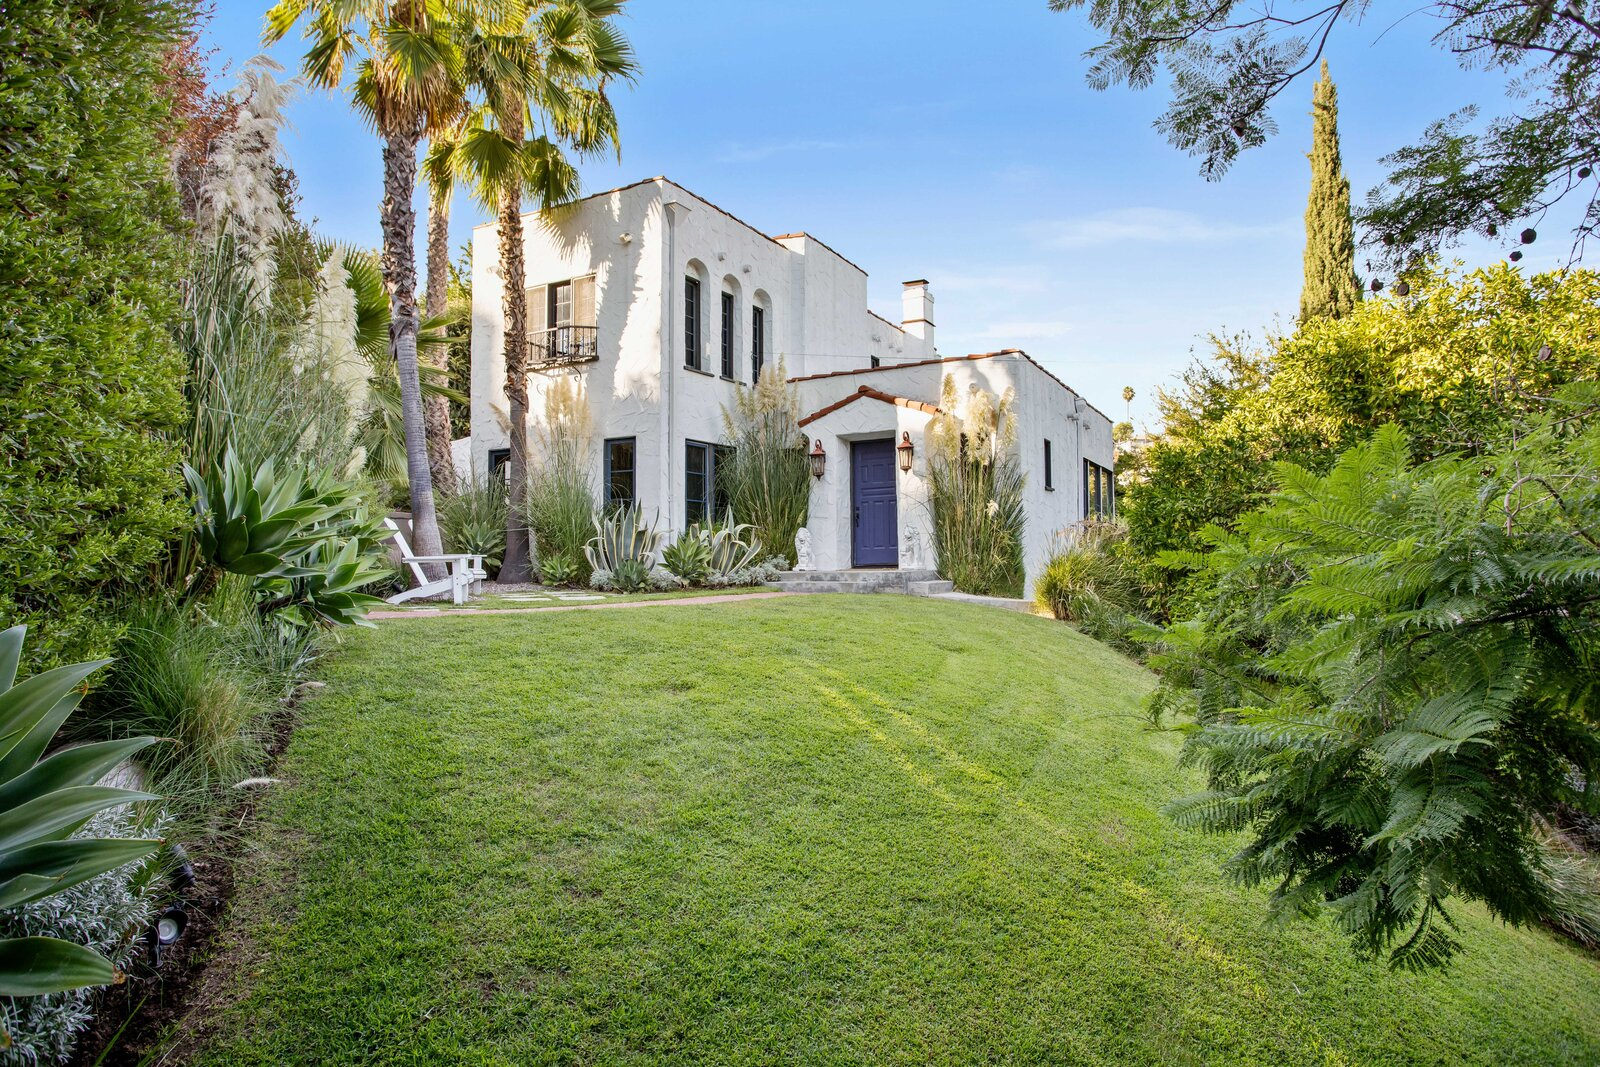 1920s Spanish Revival home exterior